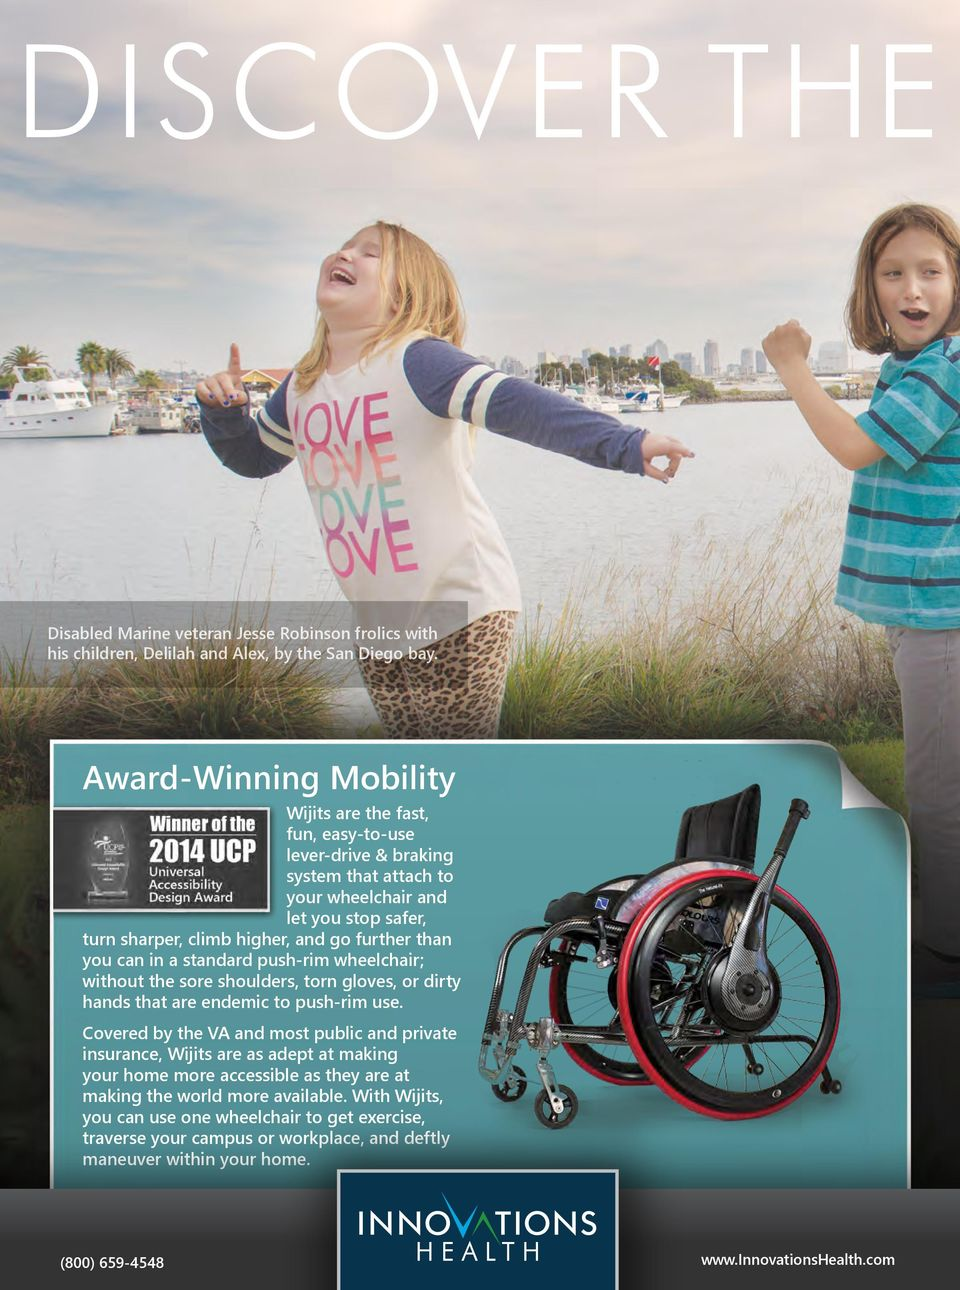 you can in a standard push-rim wheelchair; without the sore shoulders, torn gloves, or dirty hands that are endemic to push-rim use.